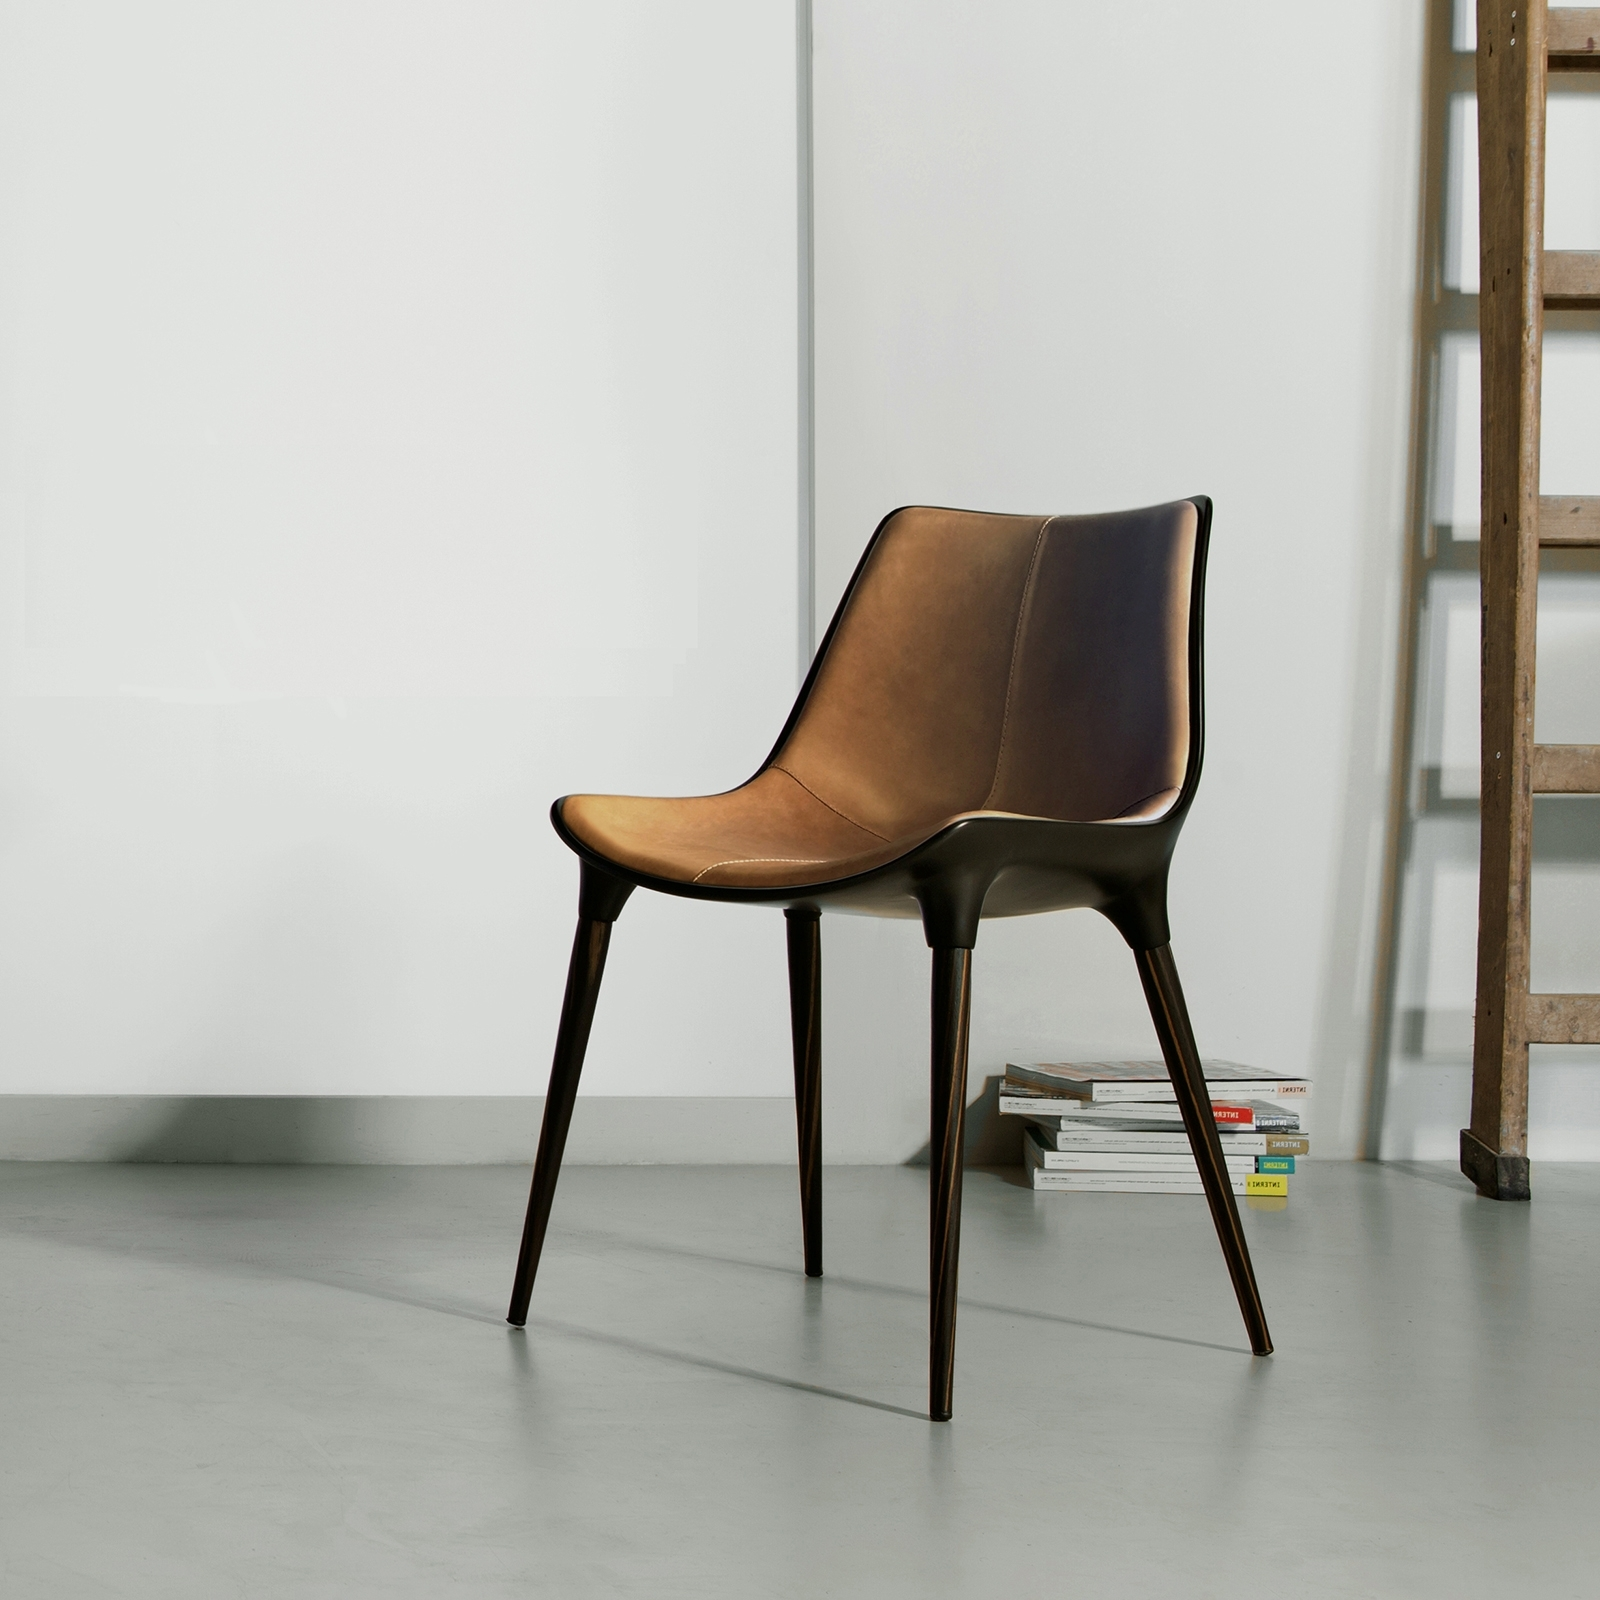 2018 Langham Dining Chair In Leather – Bimma Loft Regarding Dining Chairs (View 11 of 25)